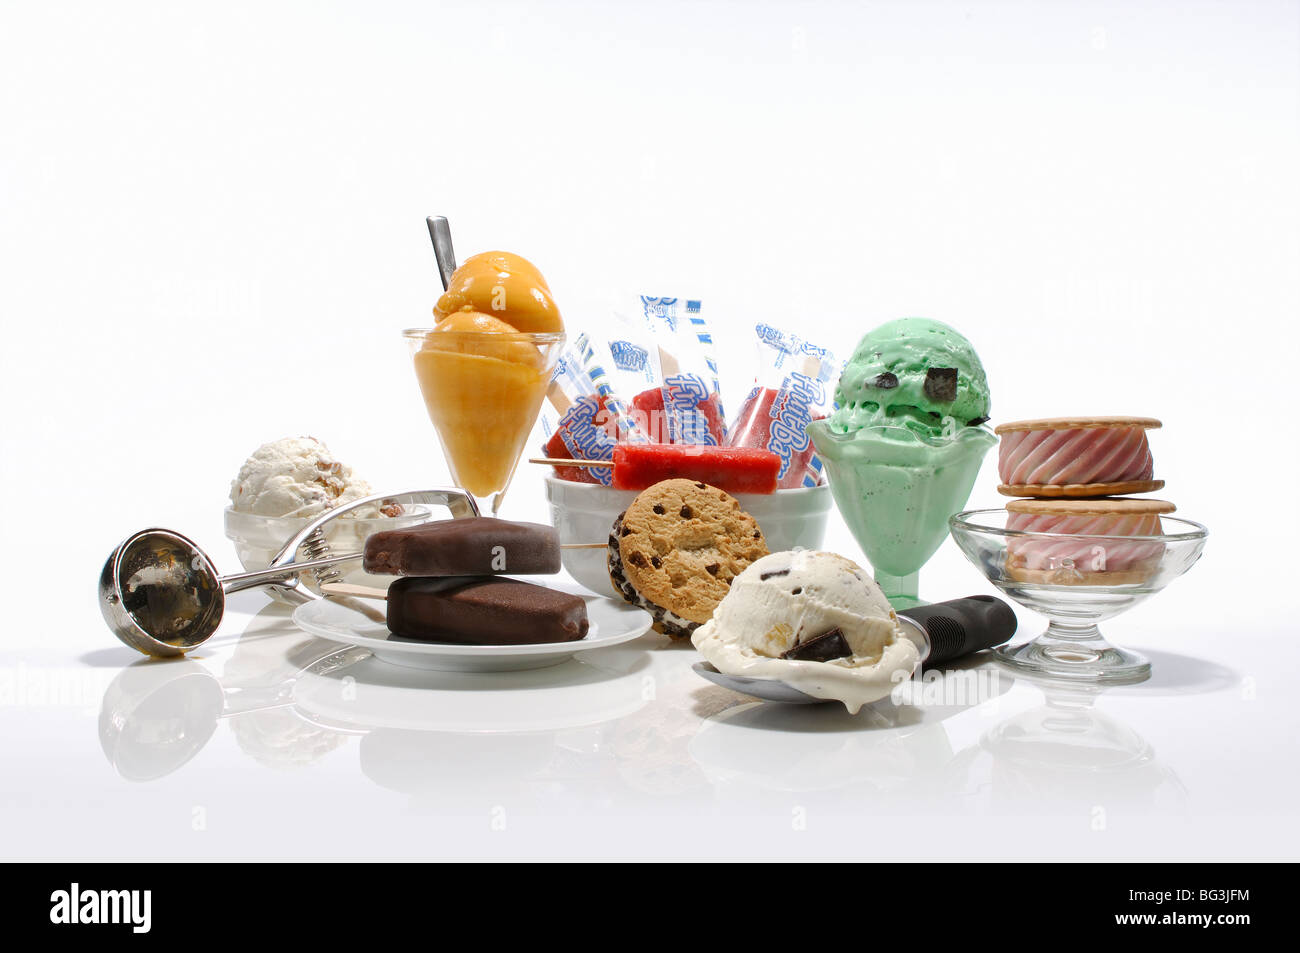 A collection of ice cream products - cones, scoops, cookies, bar and snacks. - Stock Image